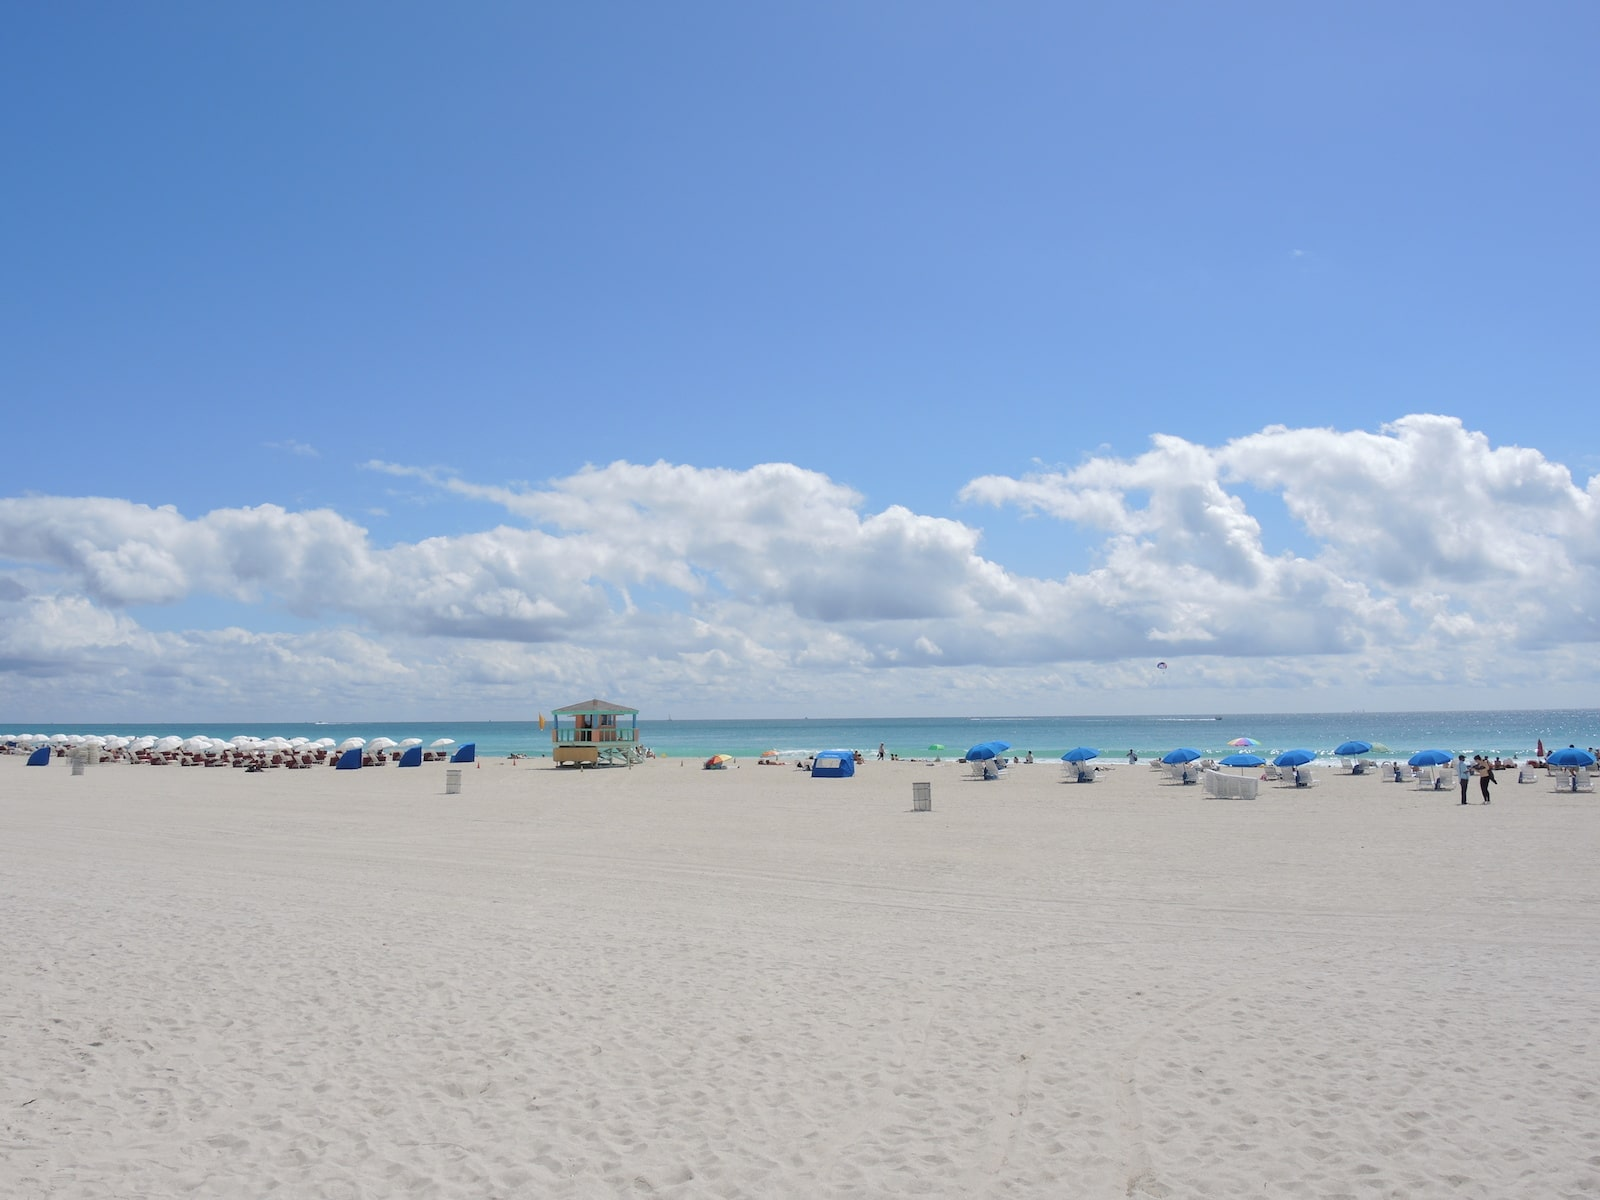 Image of Lummus Park, Miami Beach